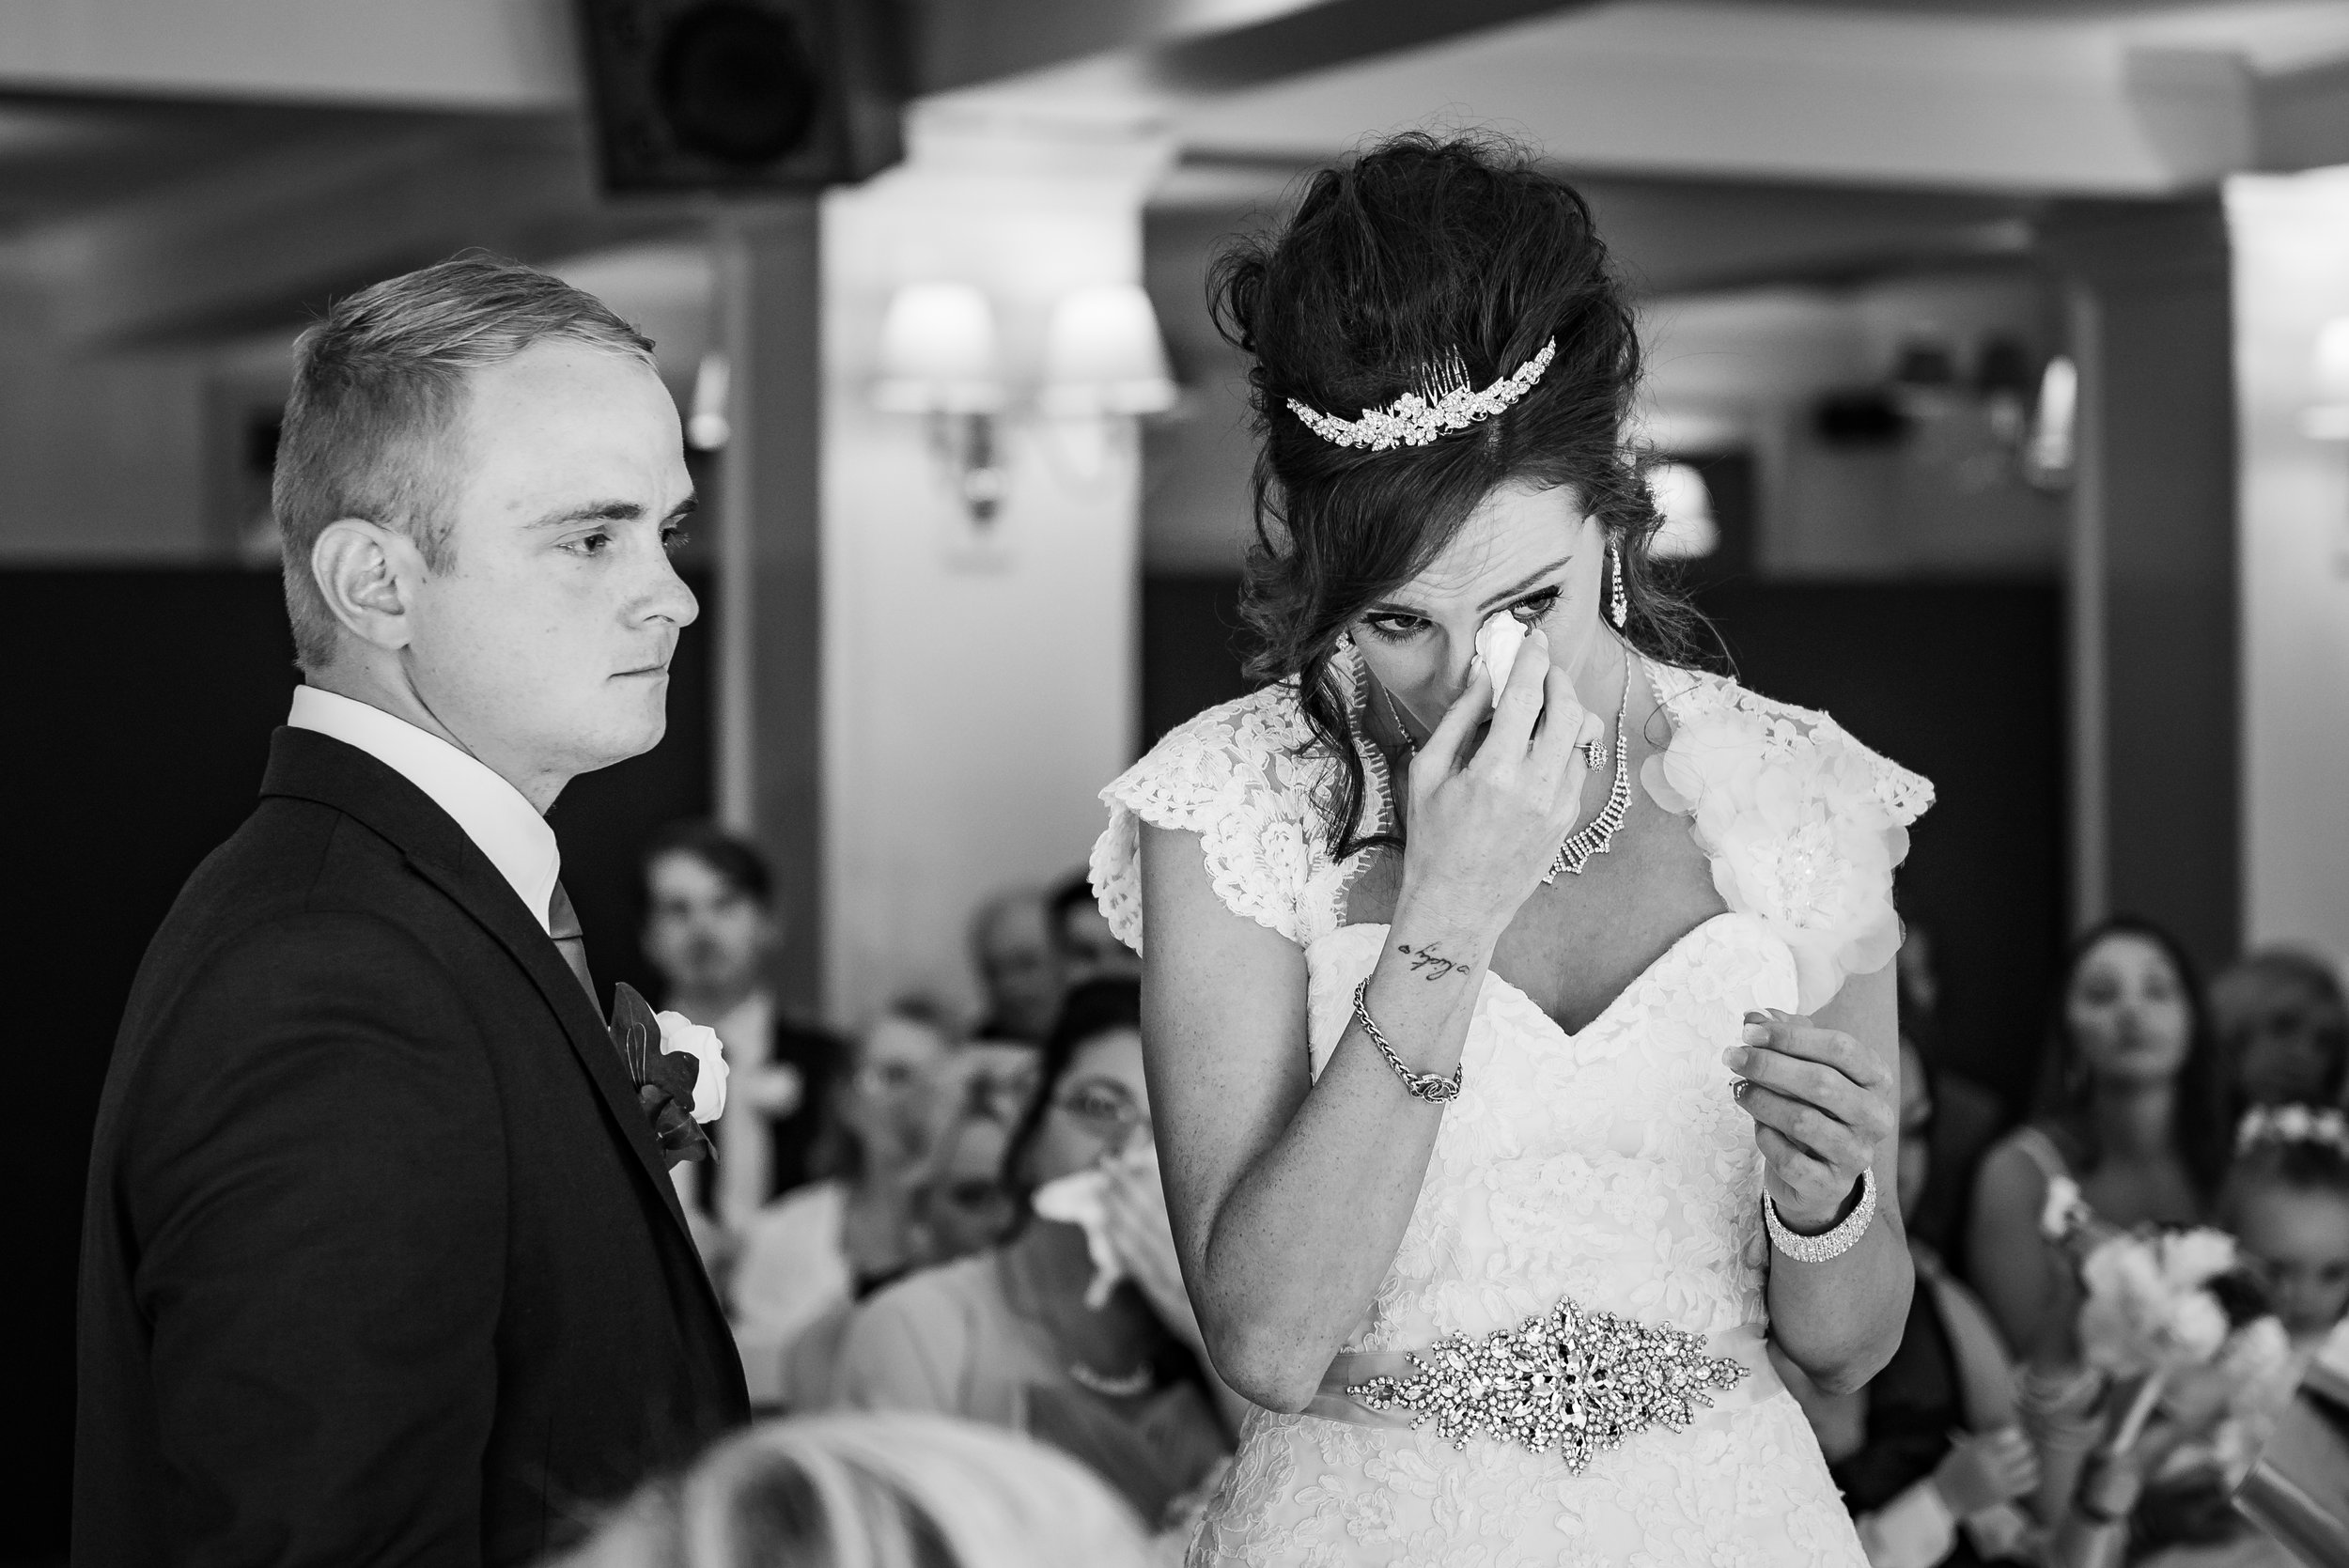 black and white wedding photography emotional bride ceremony